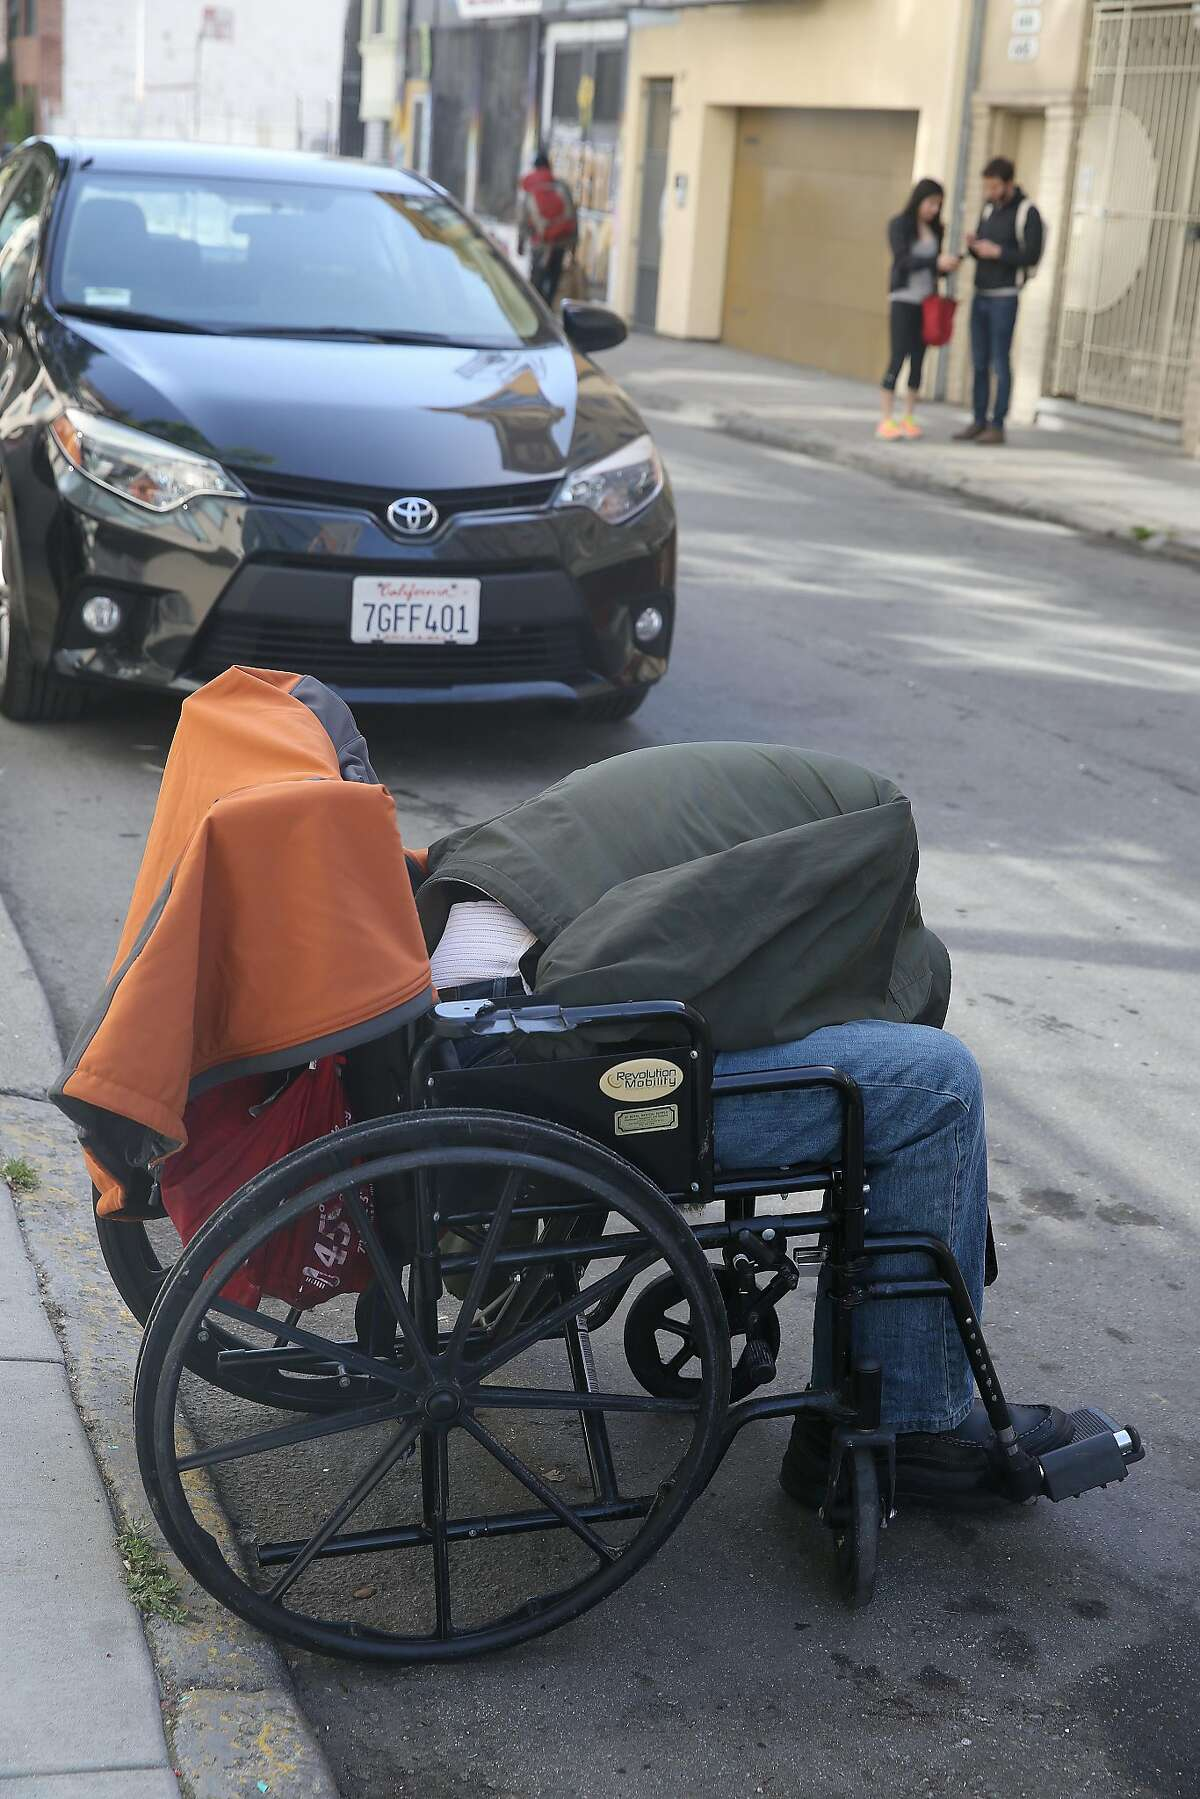 A man sleeping in his wheel chair on Natoma St. on Friday, April 20, 2018, in San Francisco, Calif. City Hall has taken decisive action on scooters plaguing SOMA sidewalks, but has taken little action on homeless, drug use, and feces woes such as this man.